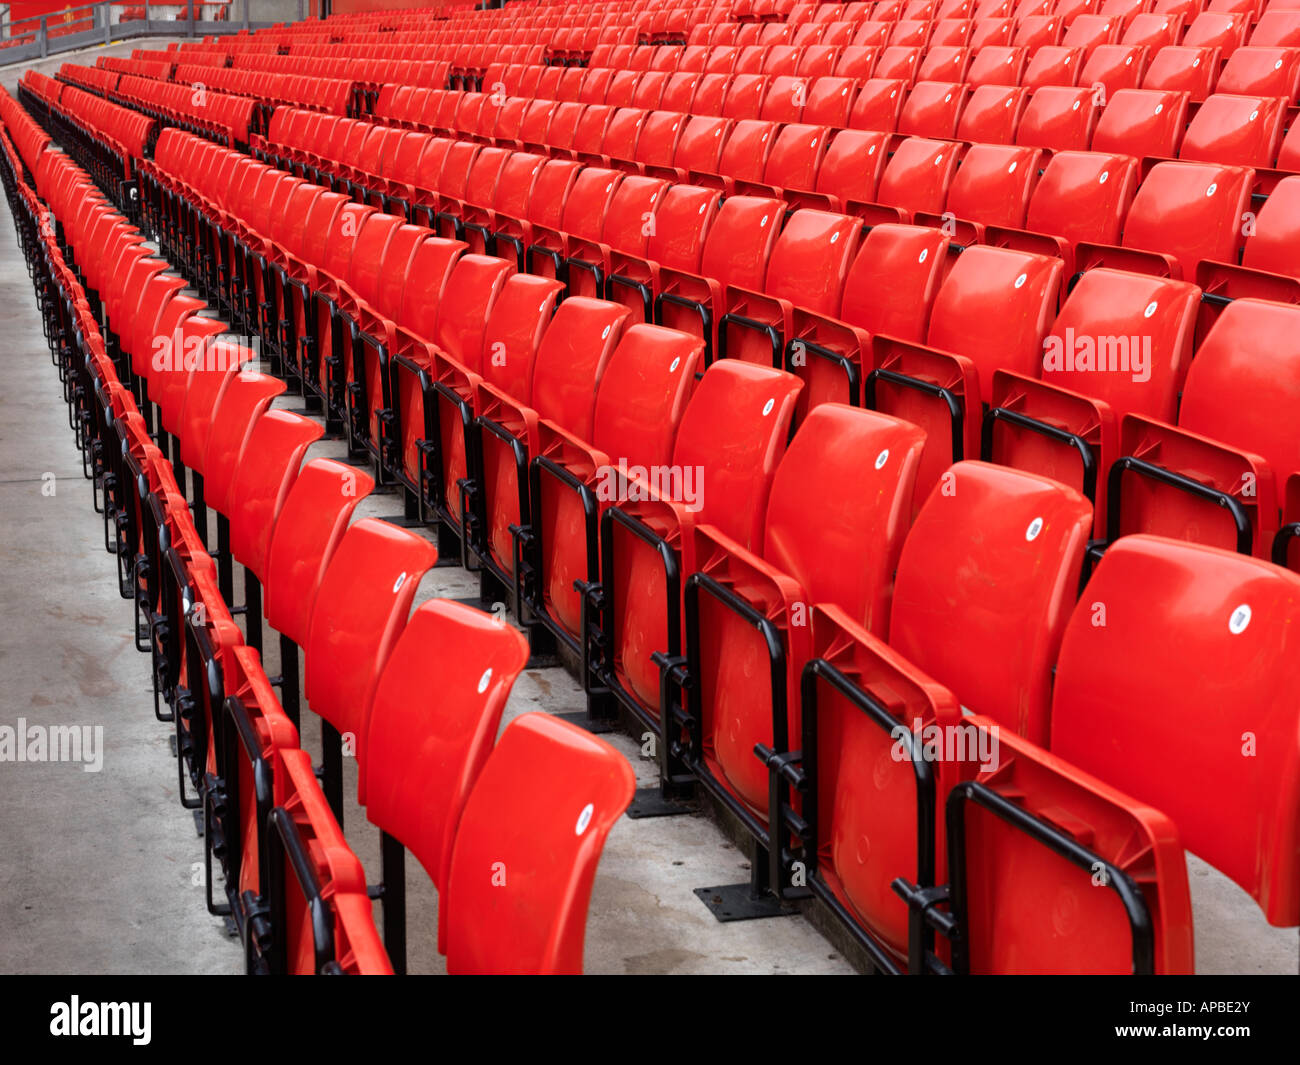 United Kingdom Manchester rows of red stadium seats at Manchester United - Stock Image